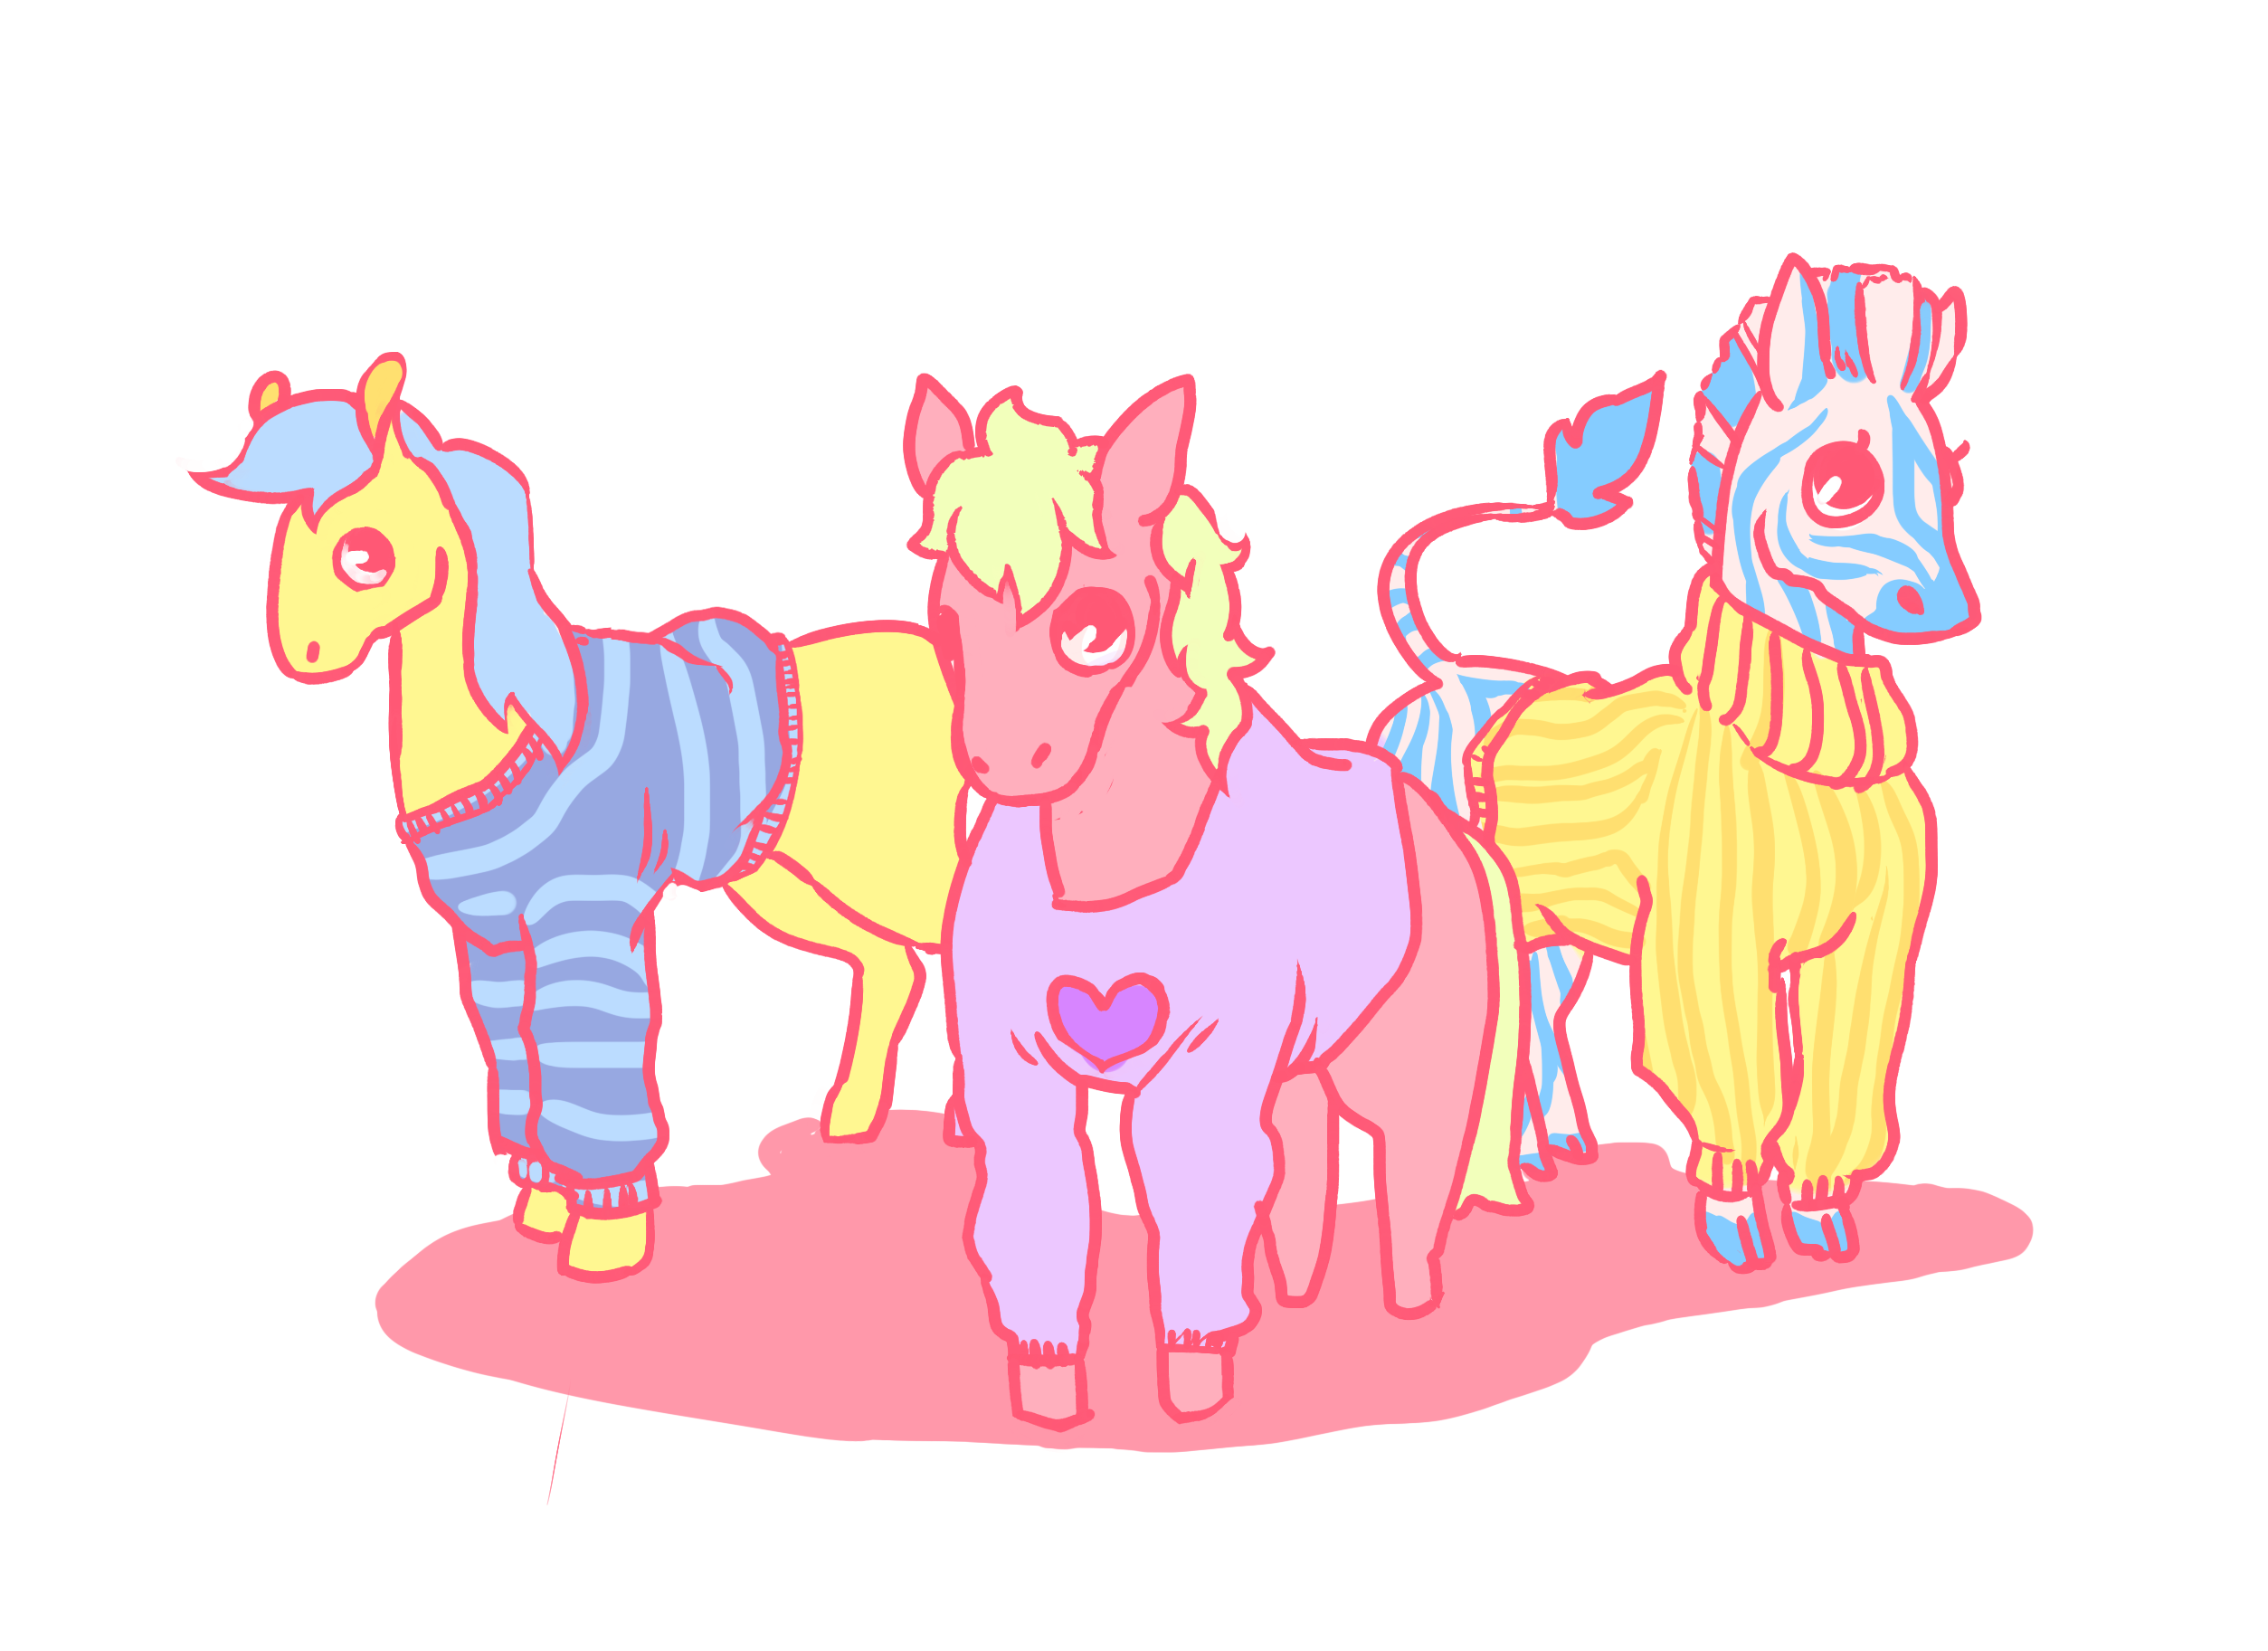 tiny horses (and one zebra)